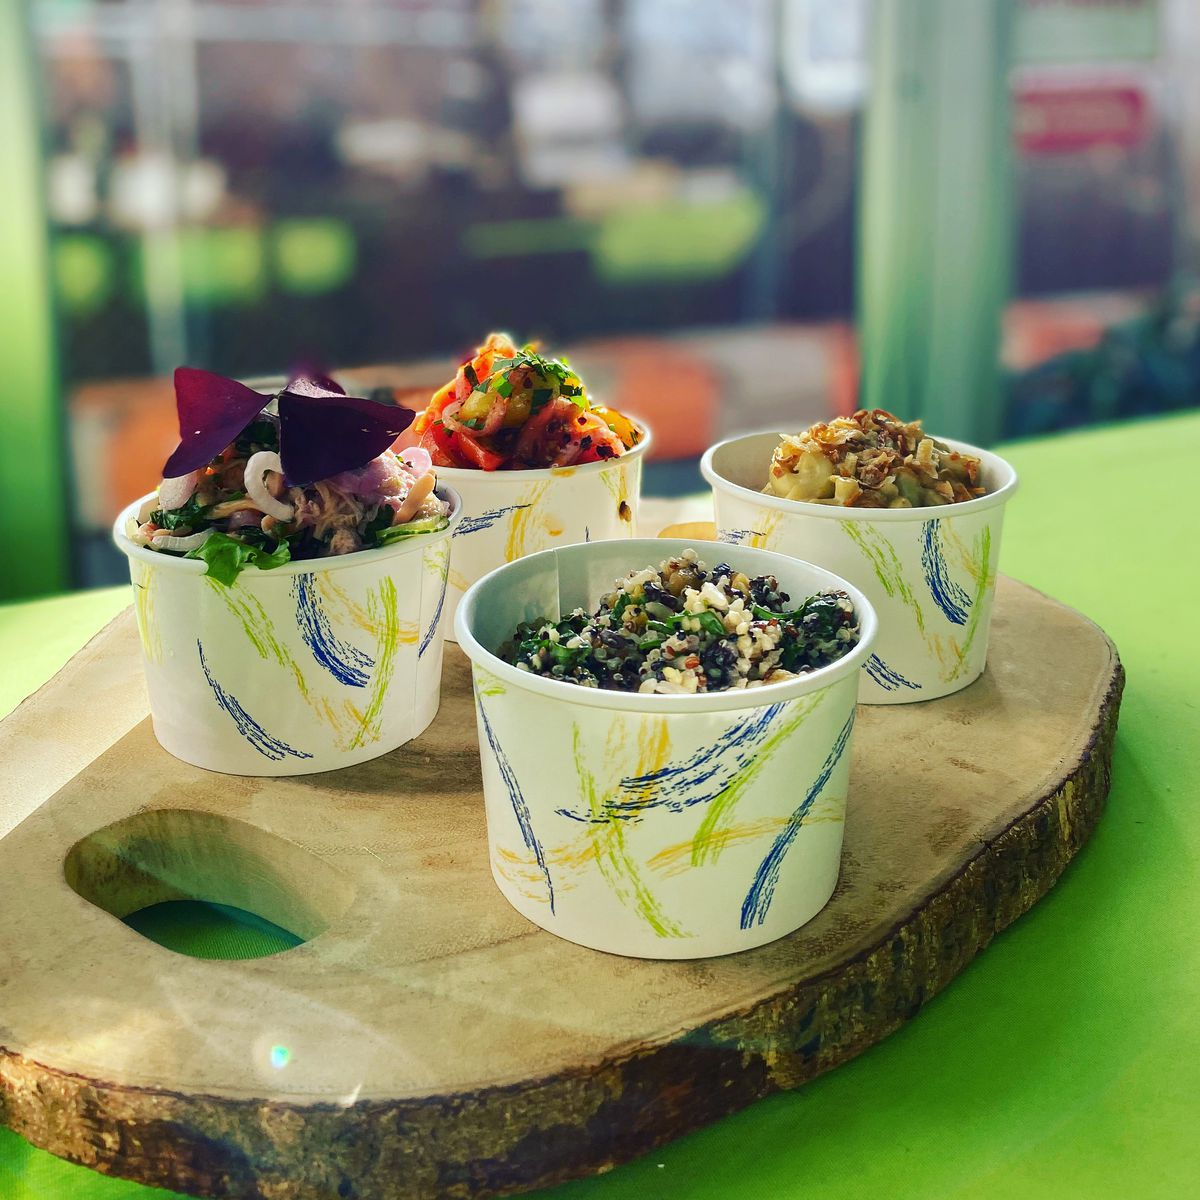 Vegetables and grains overflow from four to-go cups, placed on a wooden cutting board